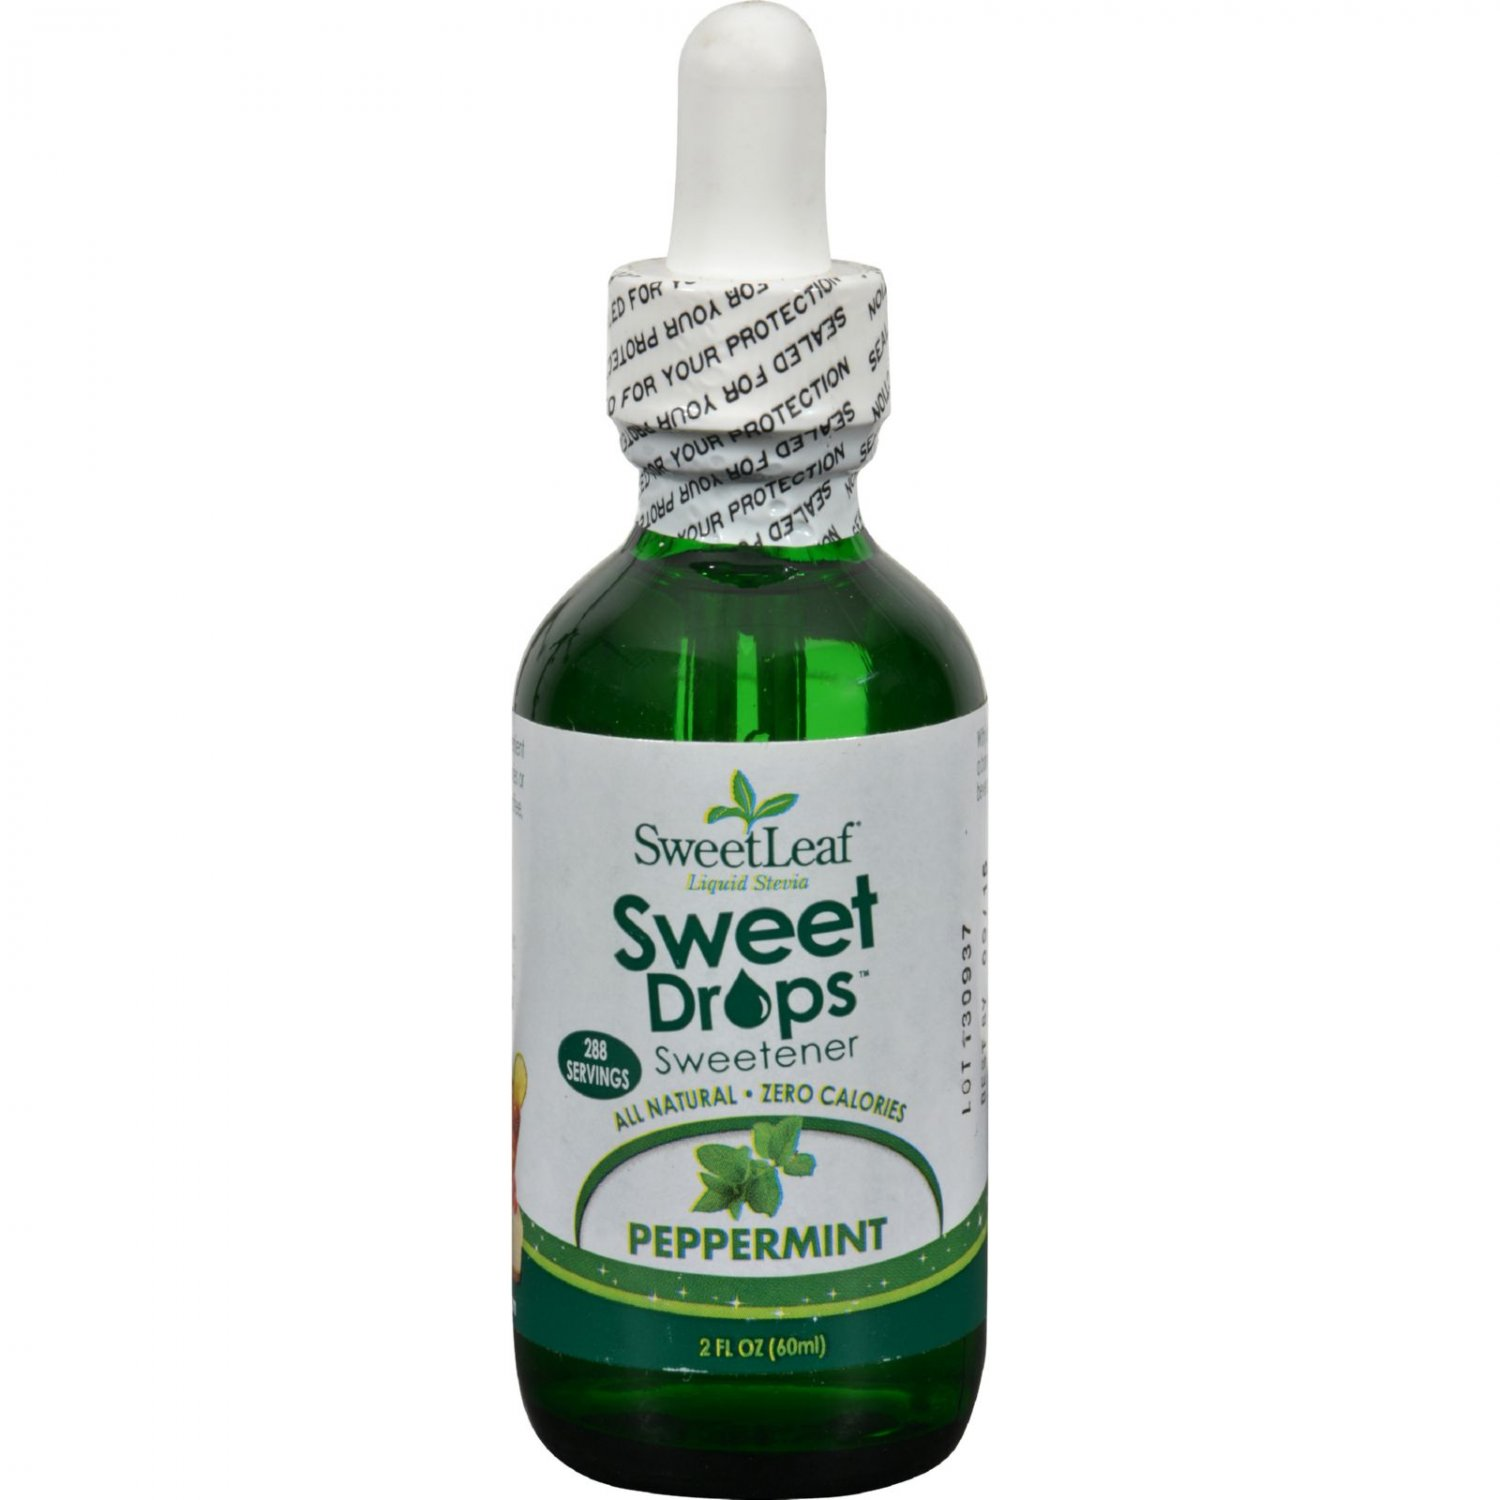 Sweet Leaf Sweet Drops Sweetener Peppermint - 2 fl oz